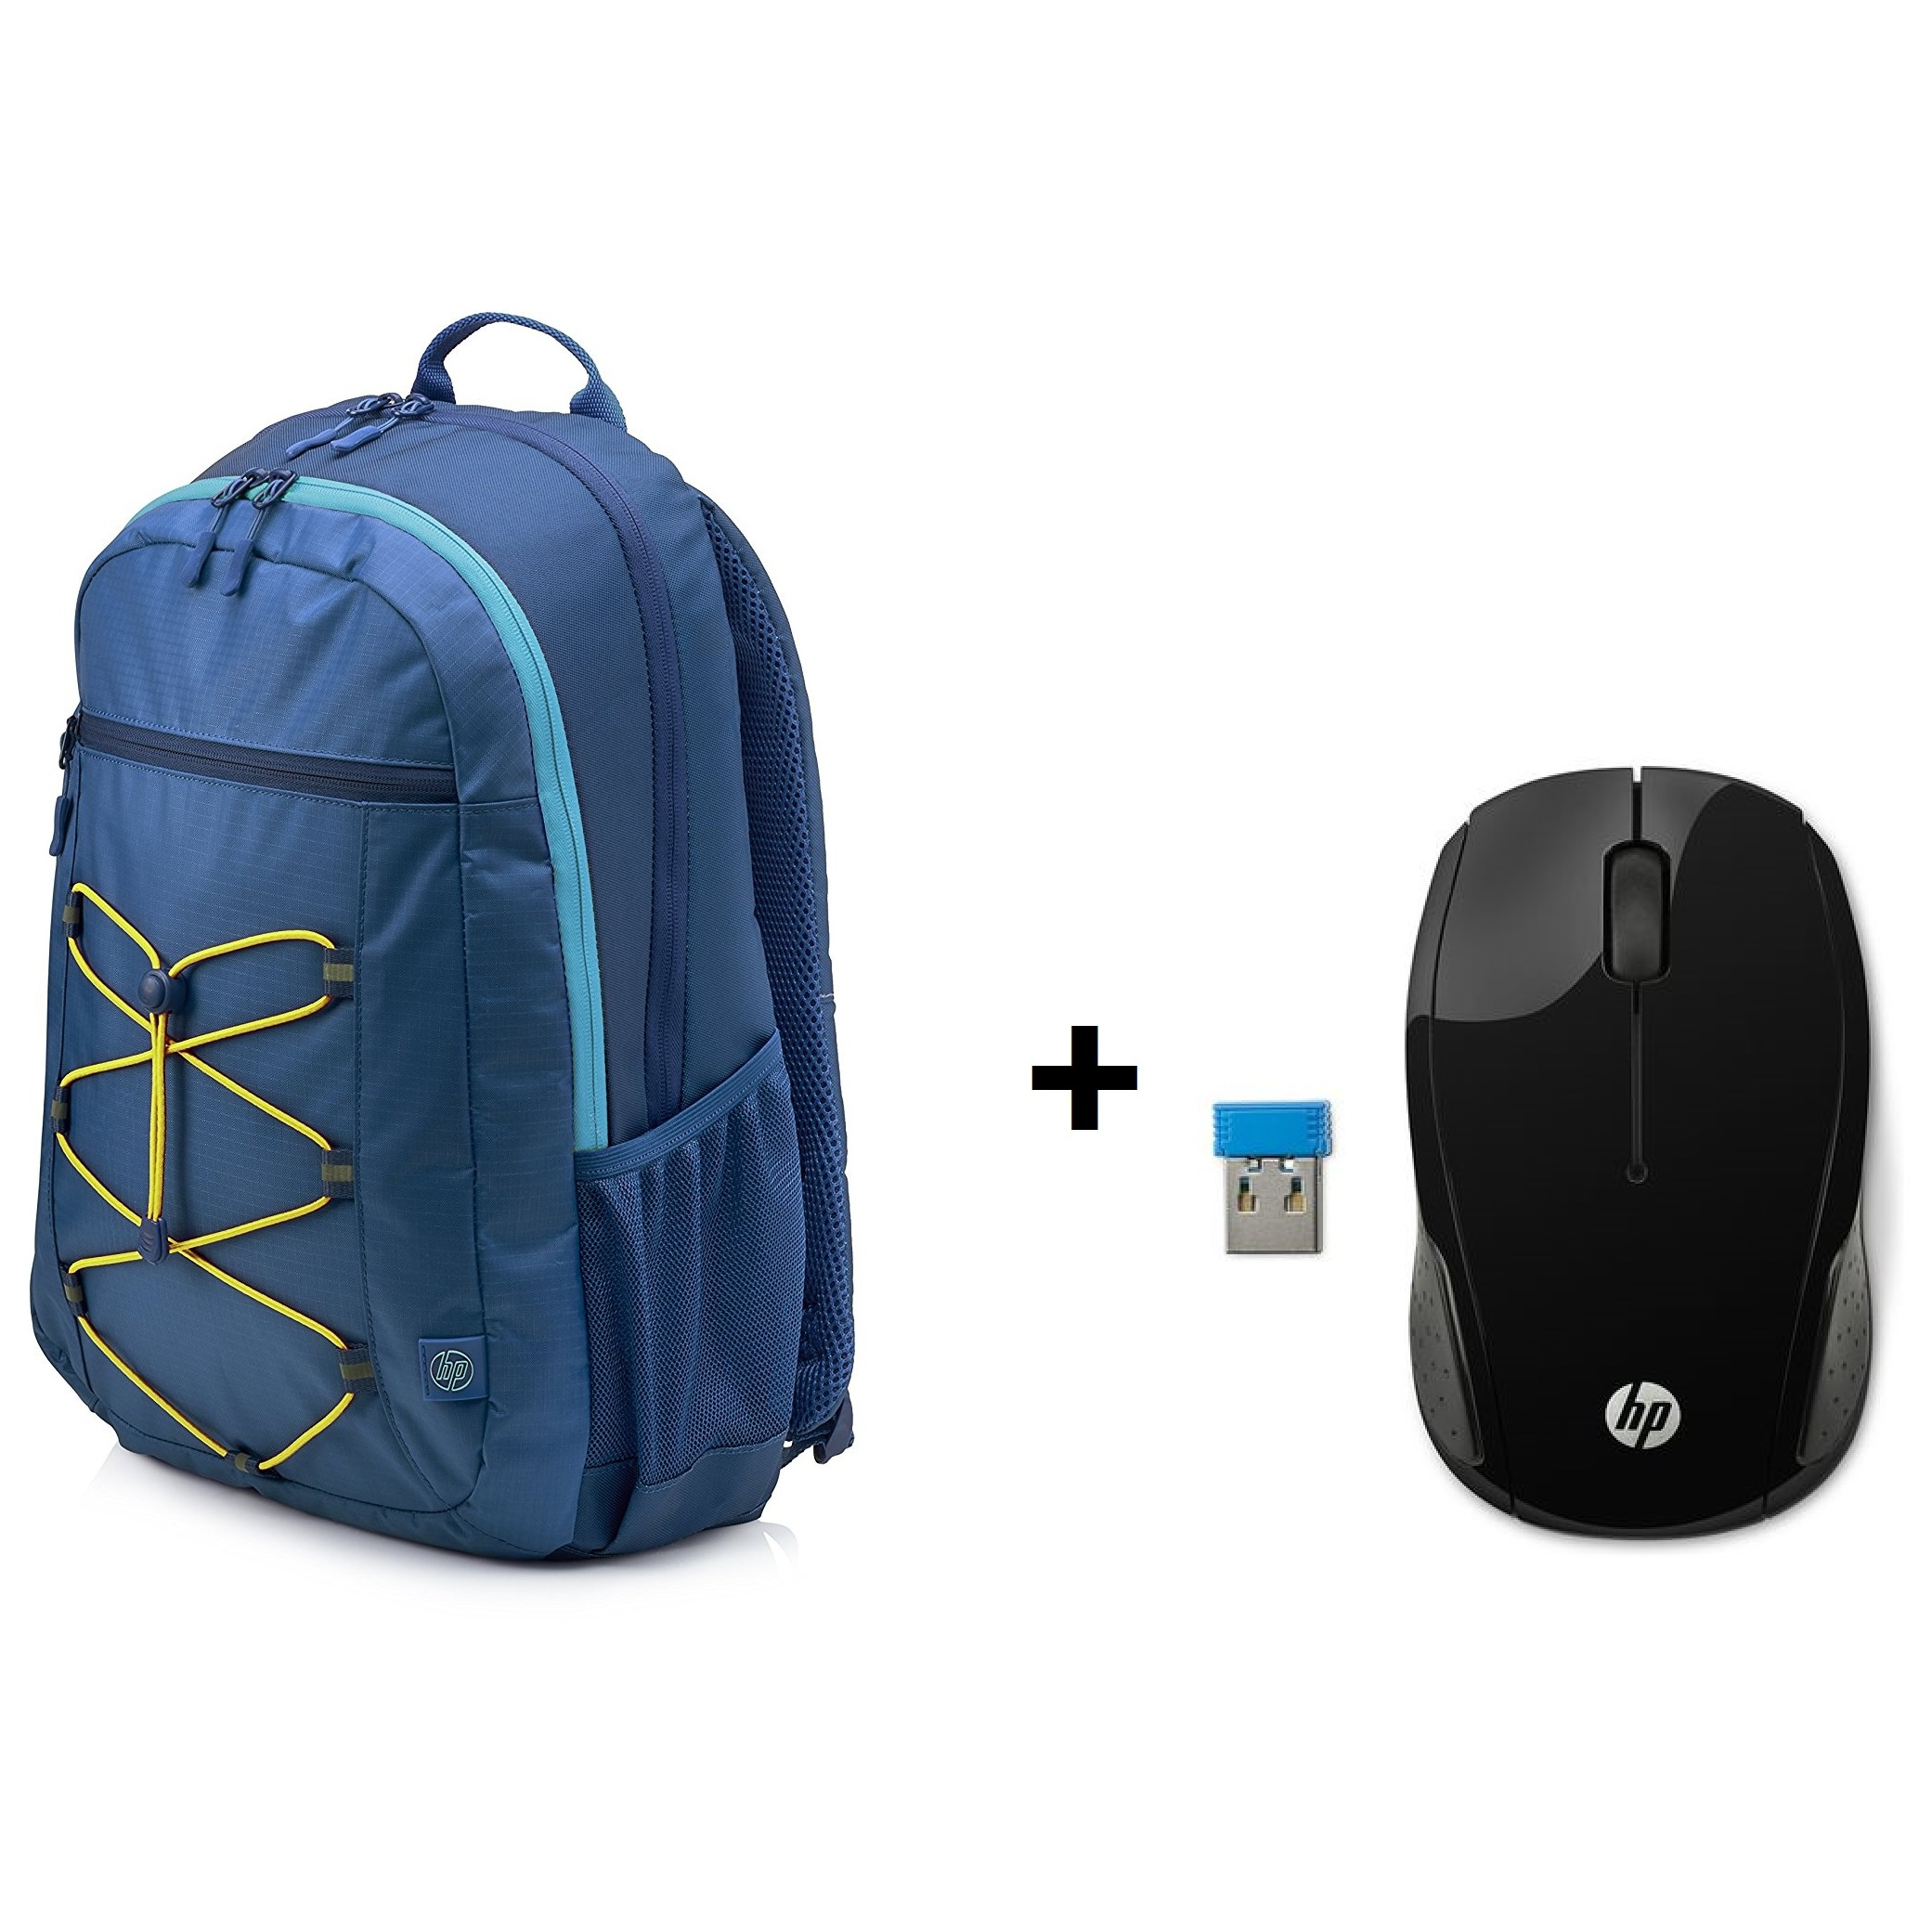 25d5d2b3c3ed0e HP 1LU24AA Active Backpack Blue/Yellow 15.6inch + X6W31AA 200 Wireless Mouse  Black